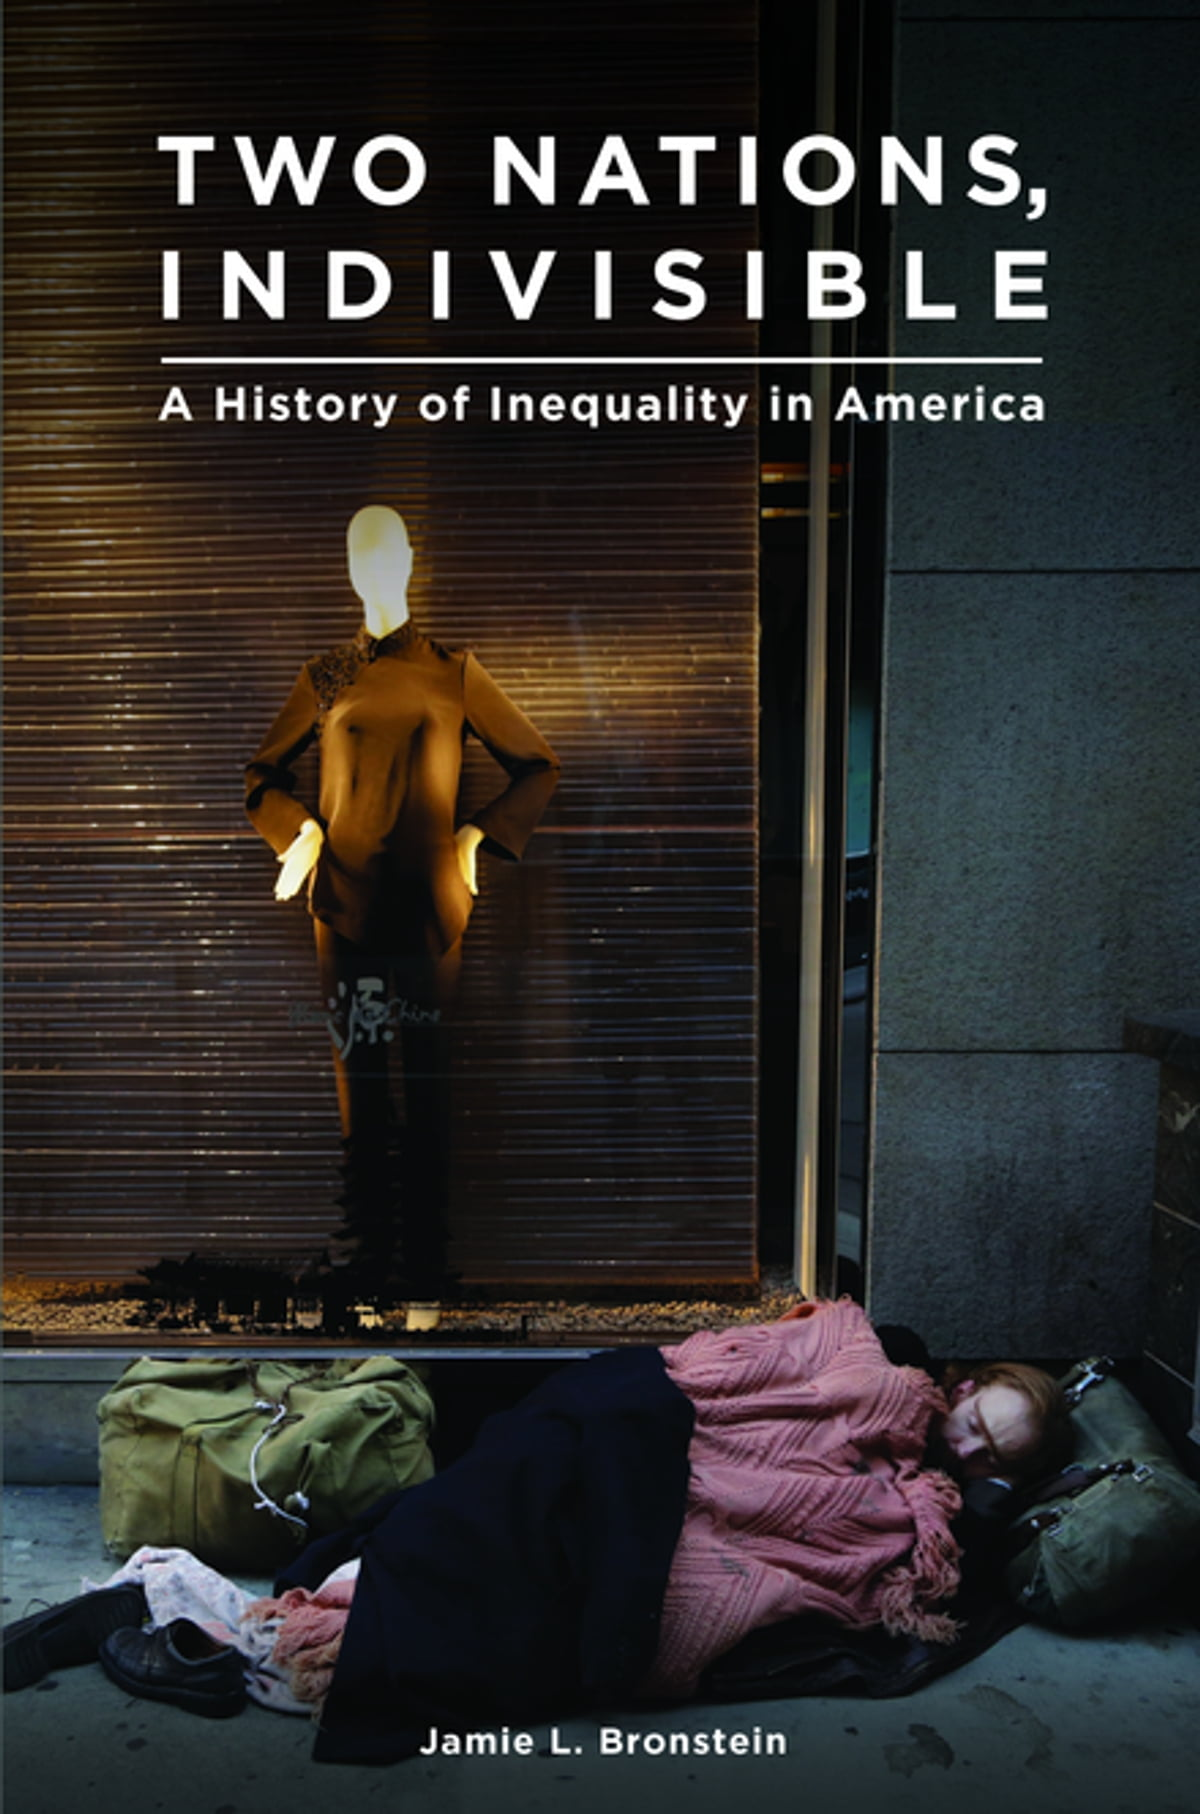 Two nations indivisible a history of inequality in america ebook two nations indivisible a history of inequality in america ebook by jamie l bronstein 9781440838293 rakuten kobo fandeluxe Document